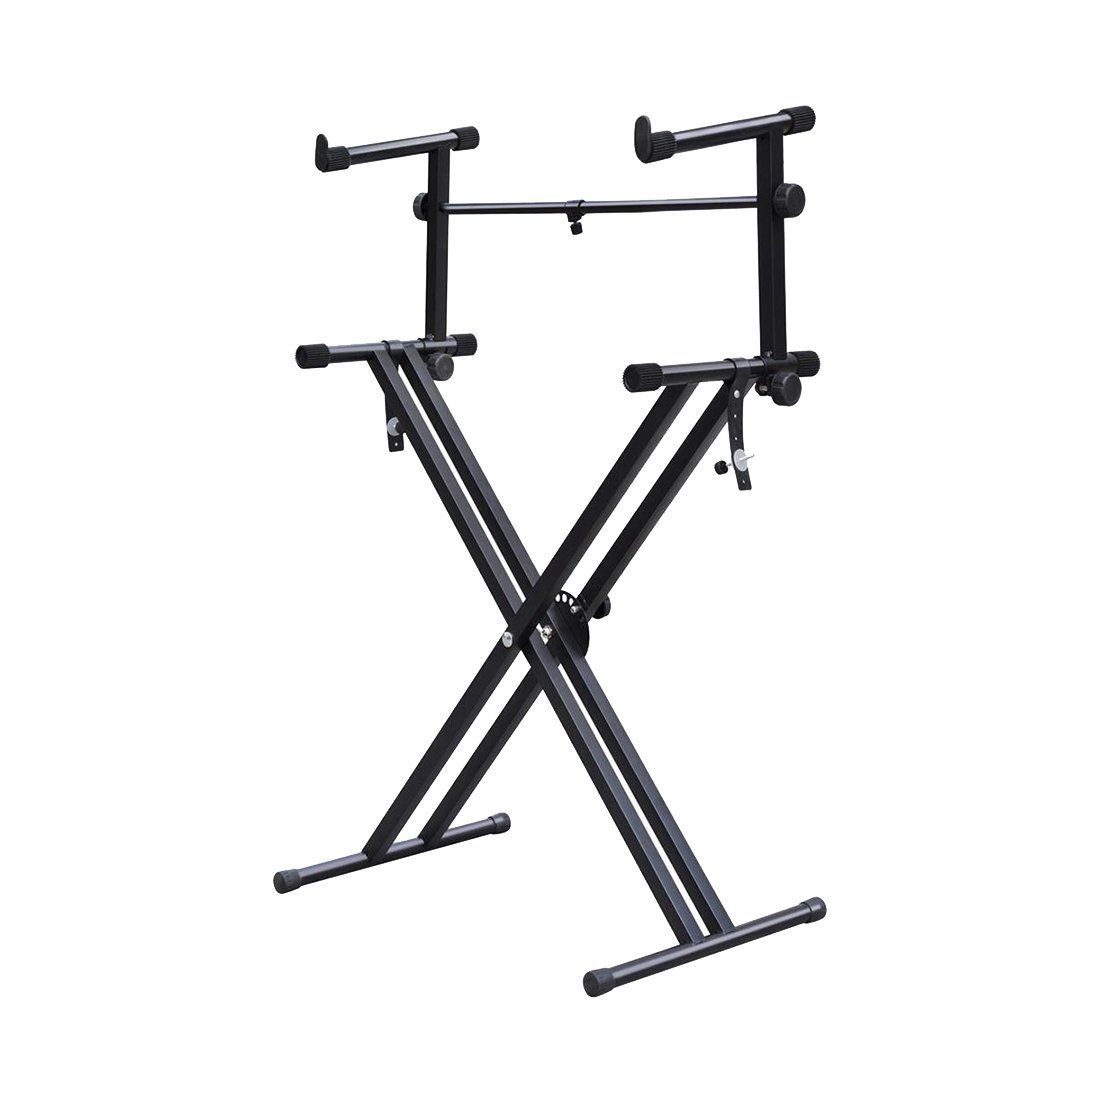 SOIDAL(R) Quality Heavy-Duty X Style Dual Keyboard Stand Electronic Piano Double 2-tier Adjustable SODIAL(R) 4334396554